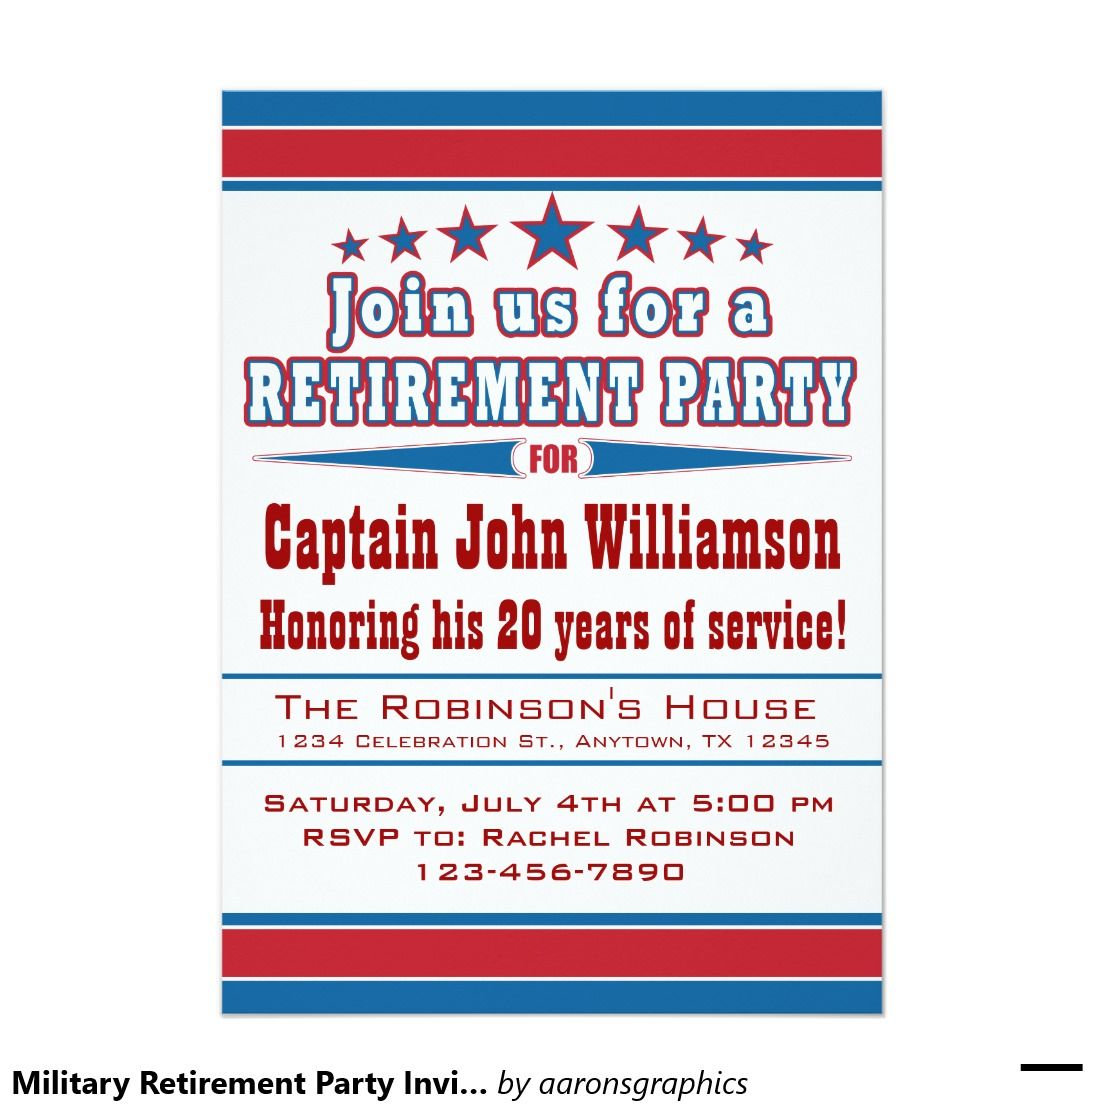 Military Retirement Party Invitation  Military Retirement Party